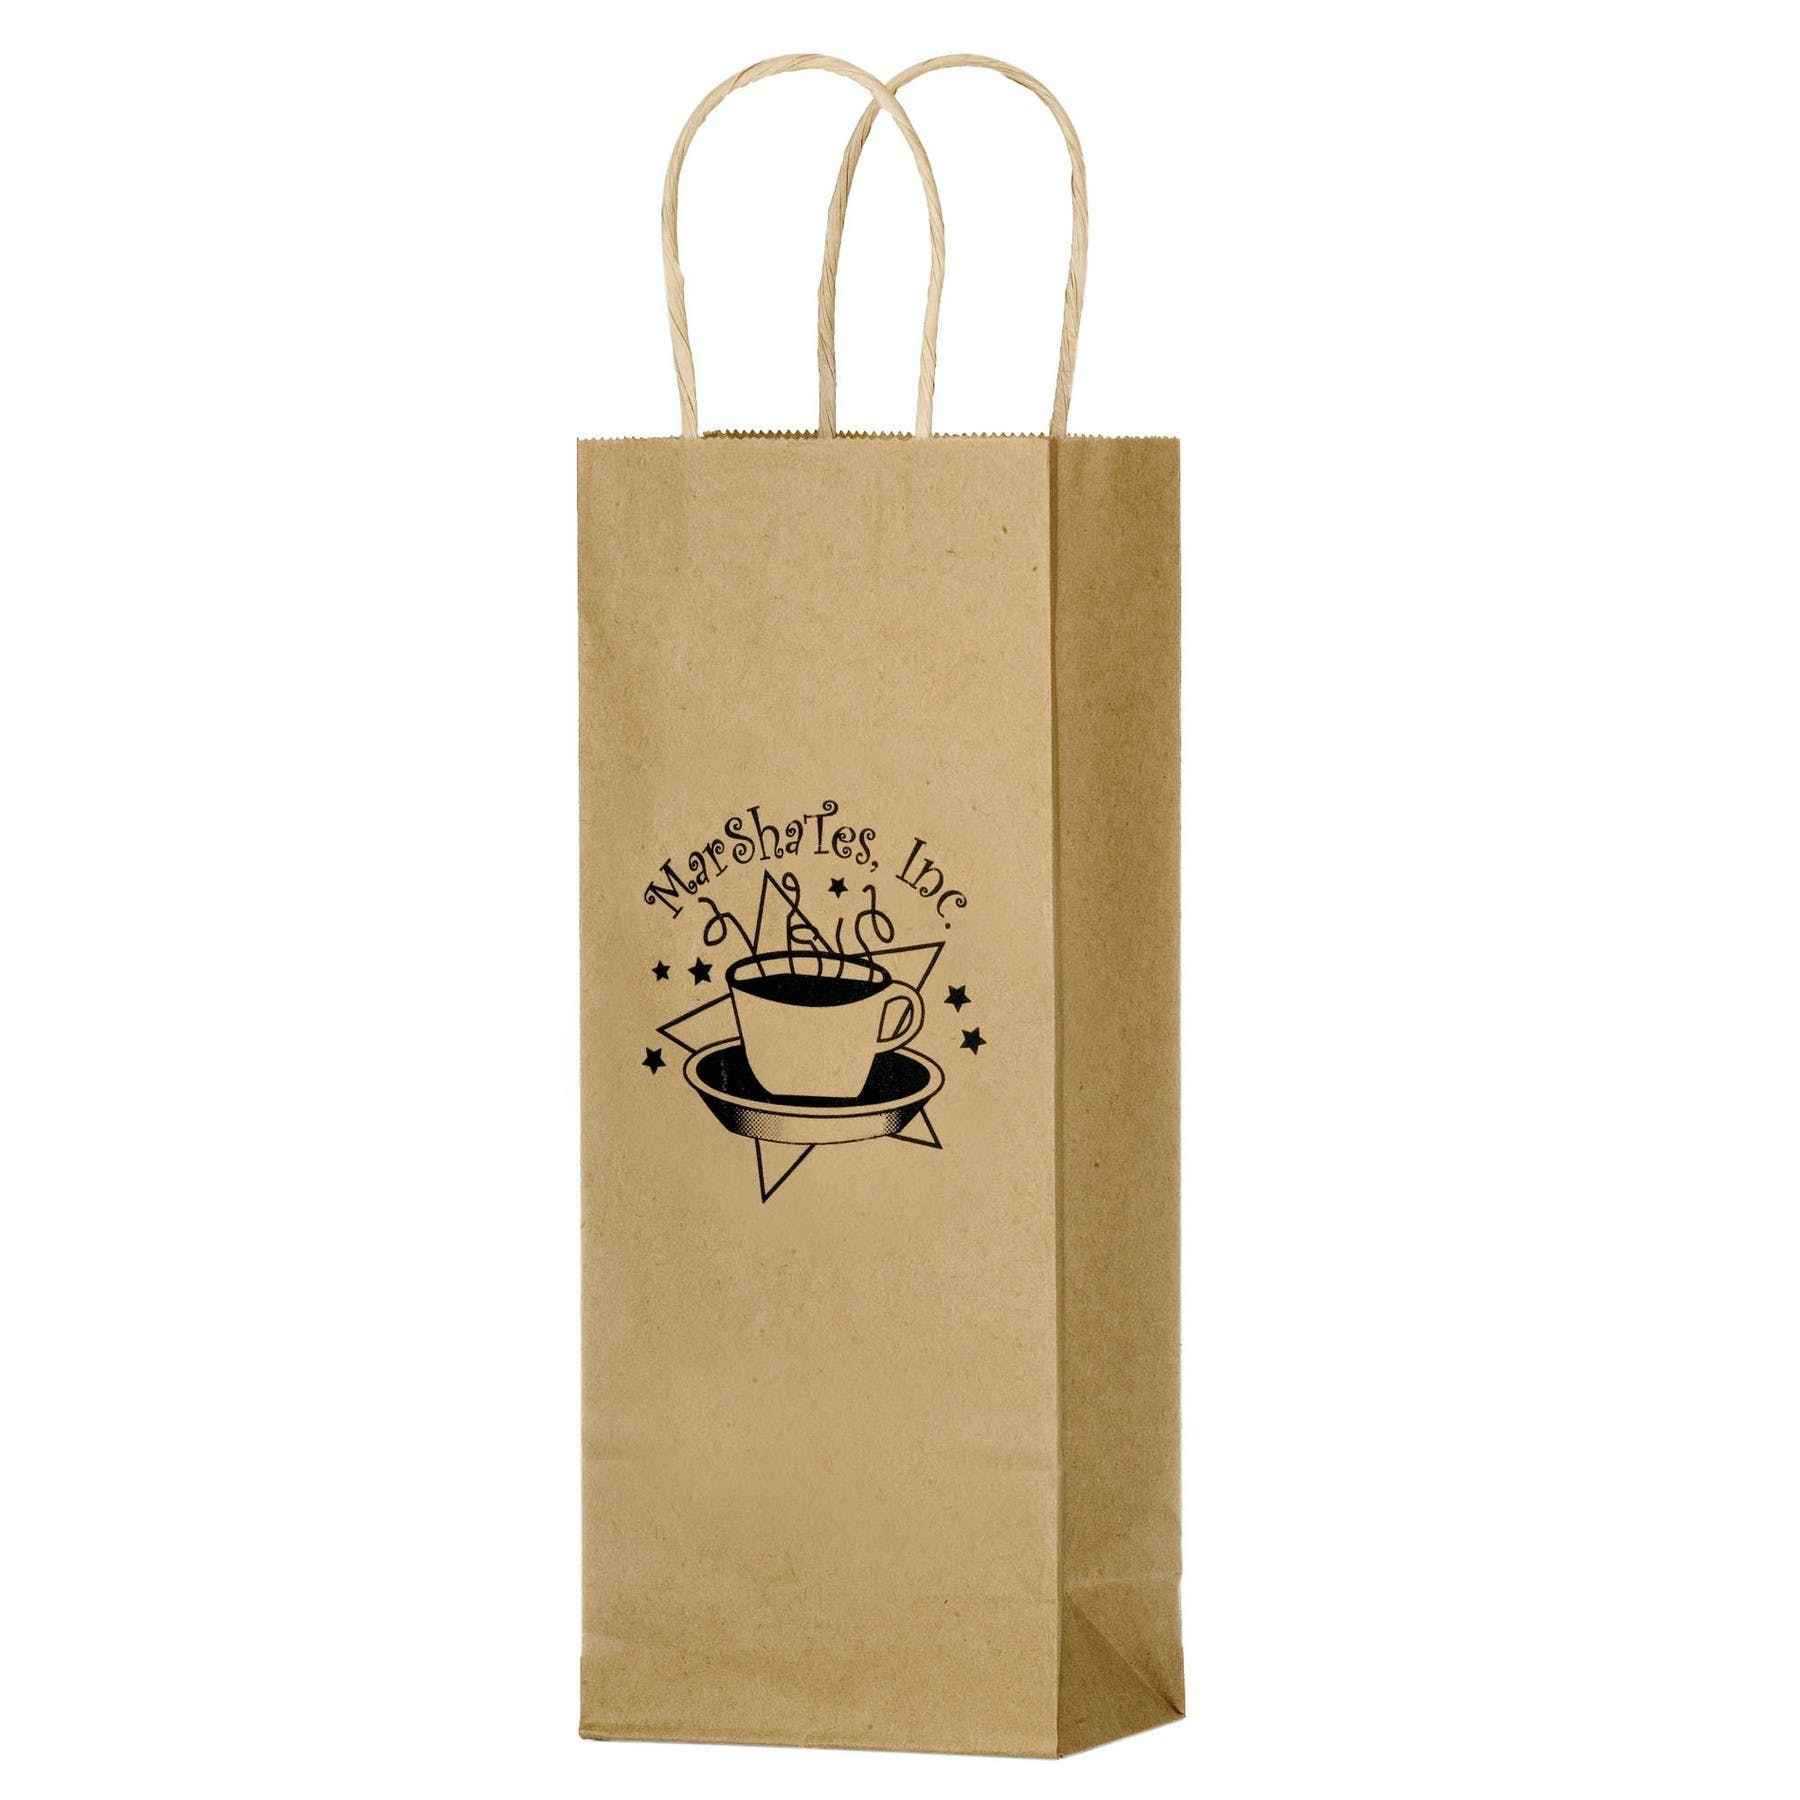 Recycled Single-Bottle Wine Bag (Item # WDGLO-CRFEZ) Wine bag sold by InkEasy